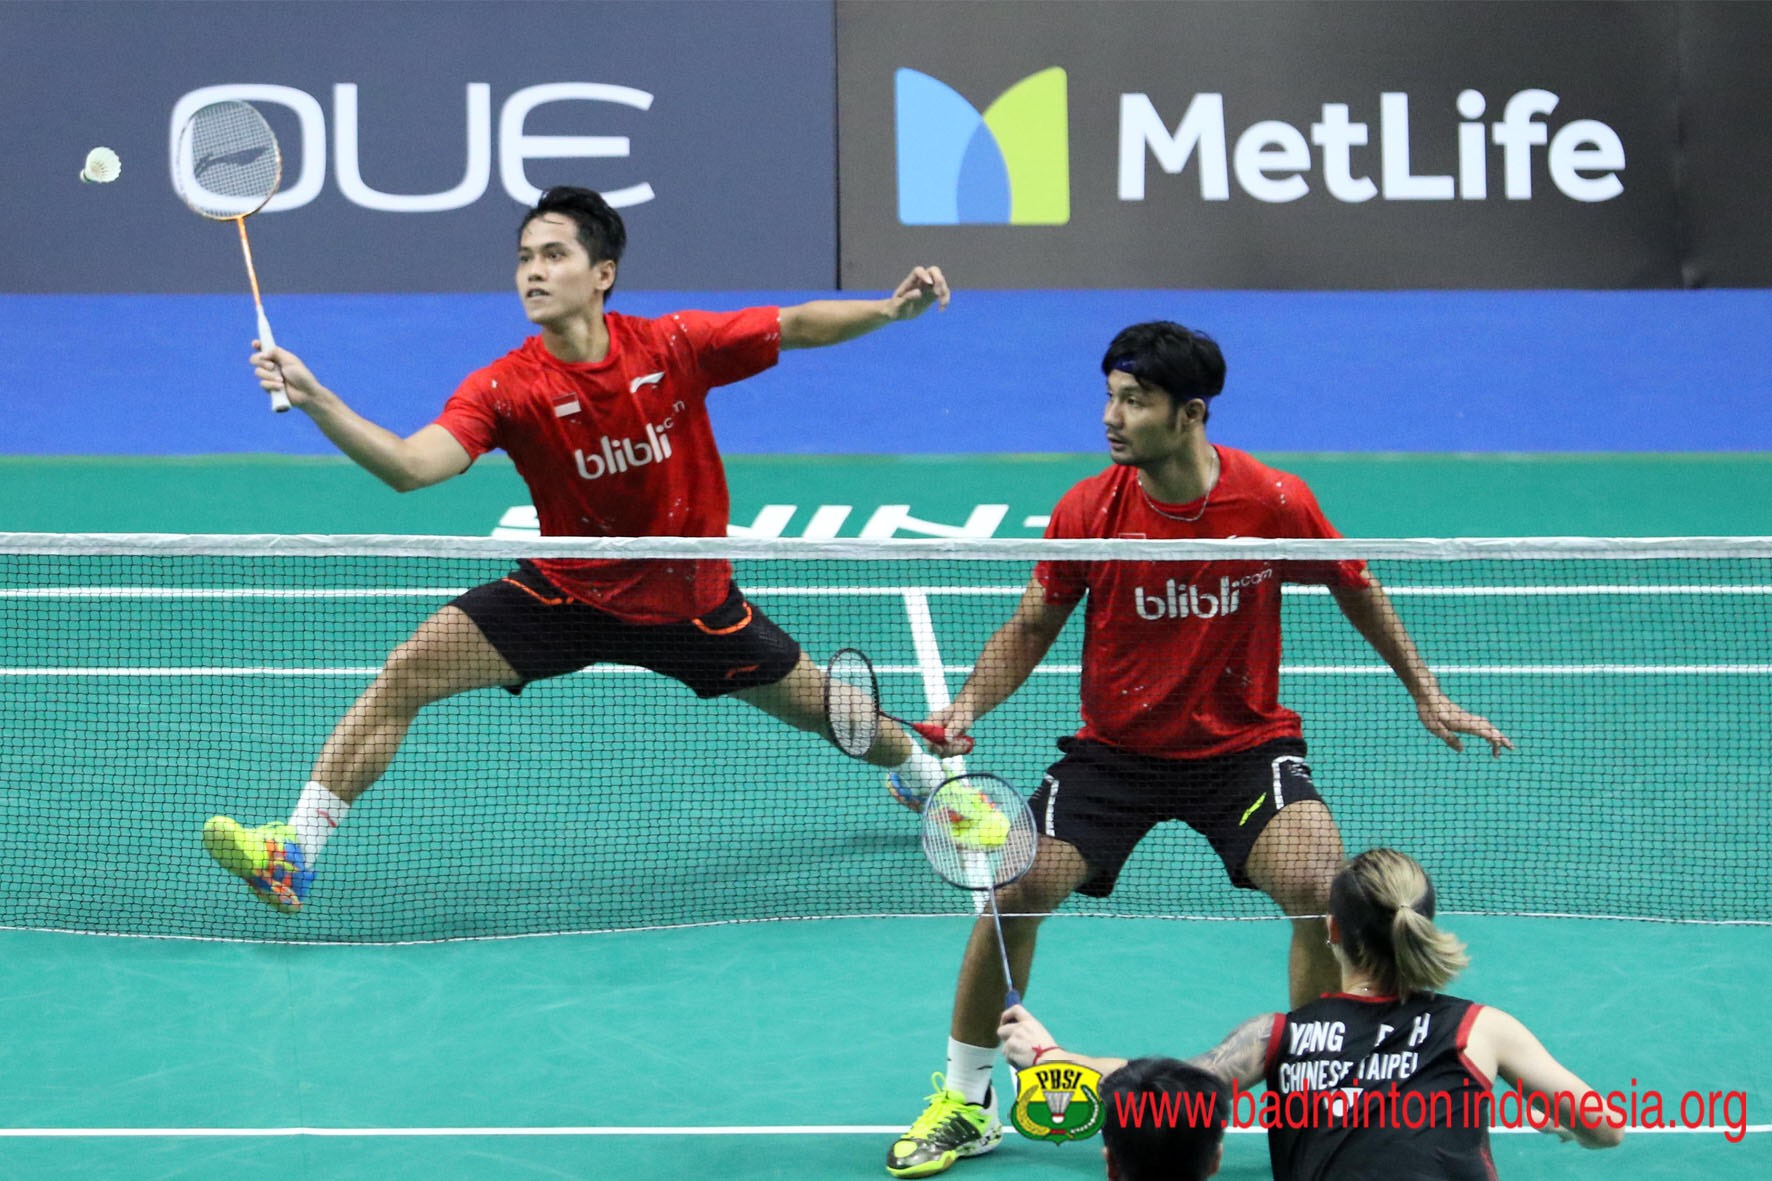 Djarum Badminton Berry Hardianto Siap Tampil di SEA Games 2017